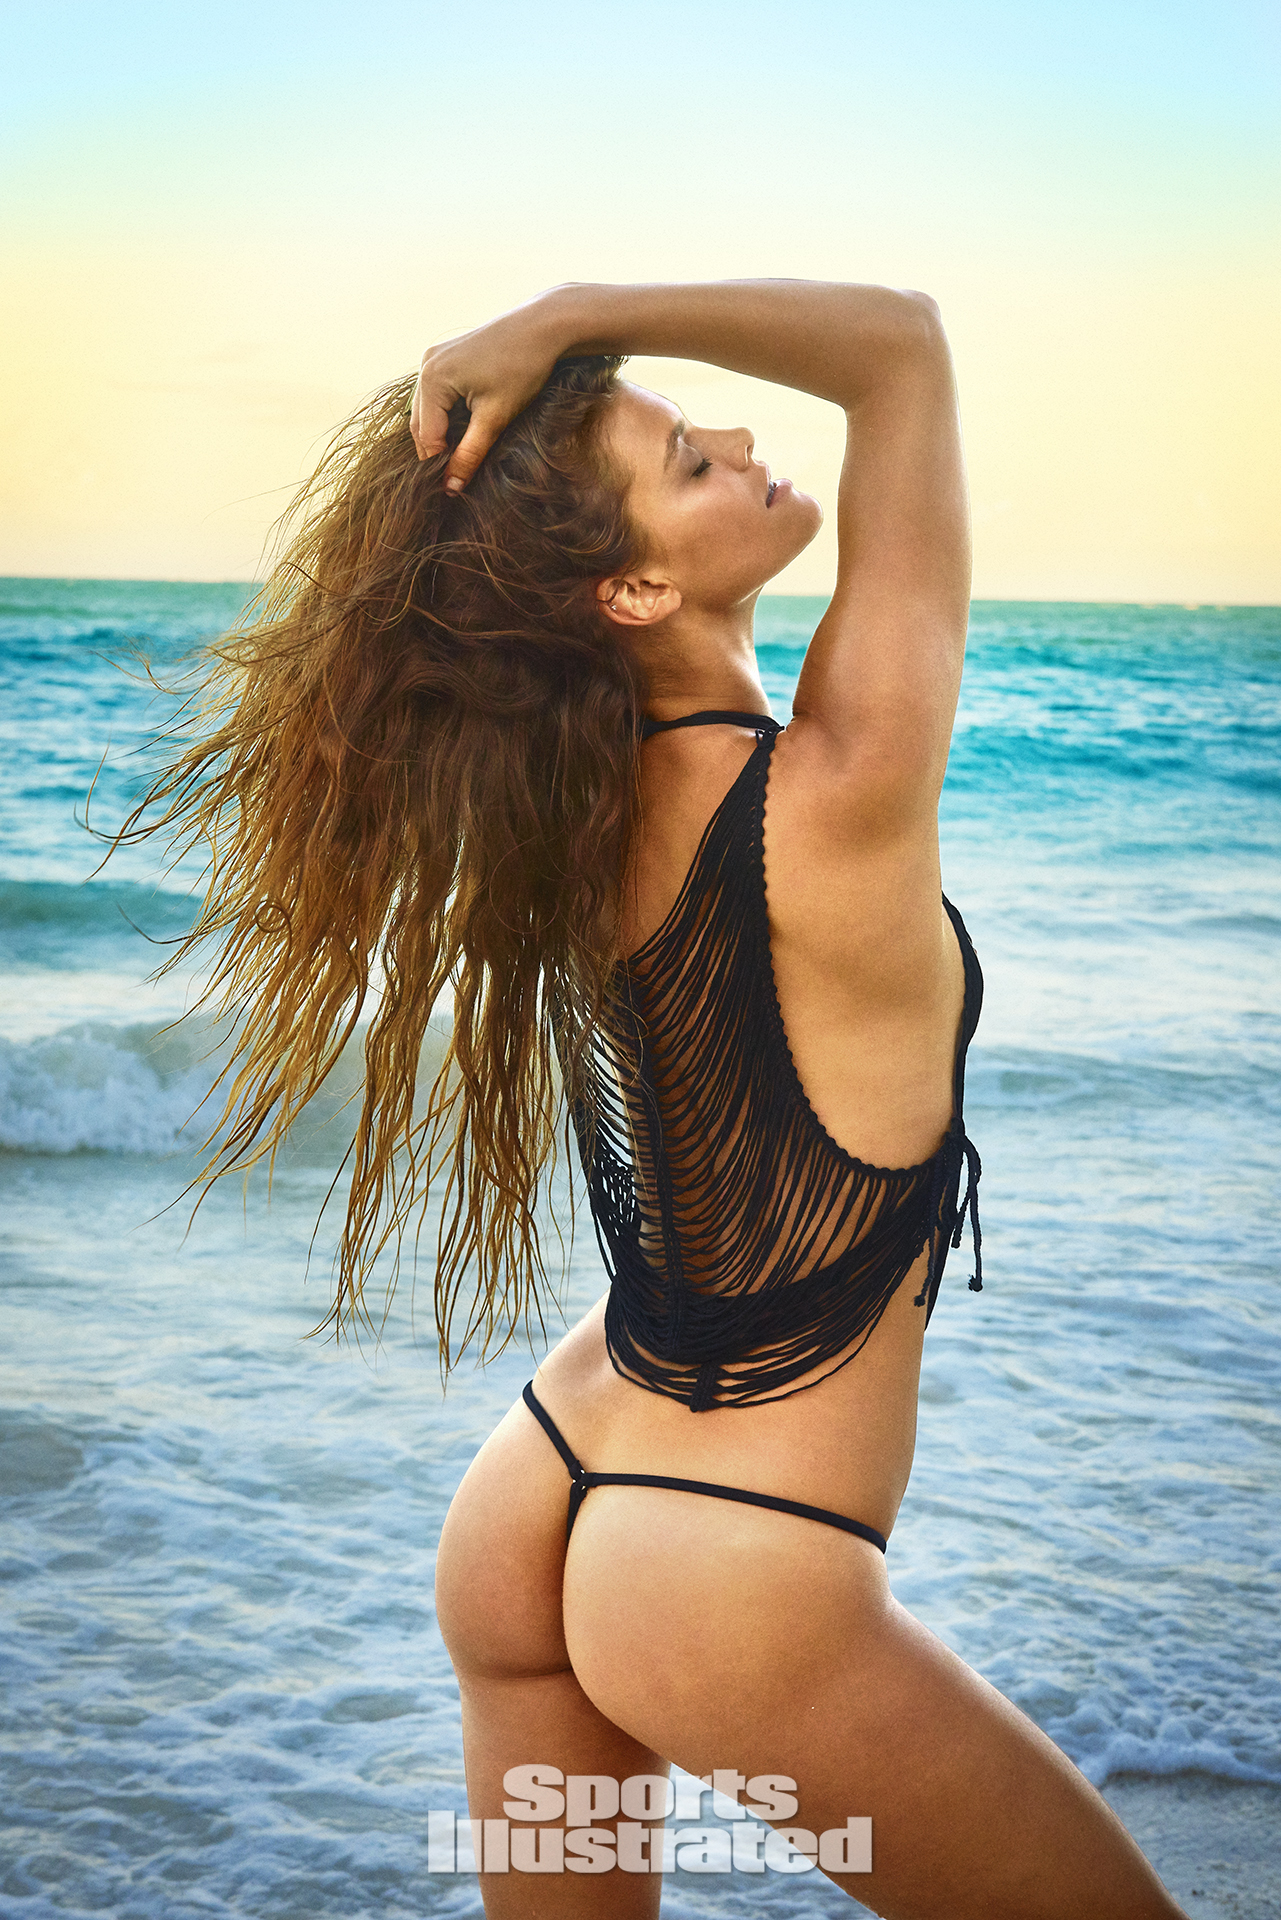 Nina Agdal was photographed by Ruven Afanador in Zanzibar. Top by La Perla. Swimsuit by TeenyB Bikini Couture.